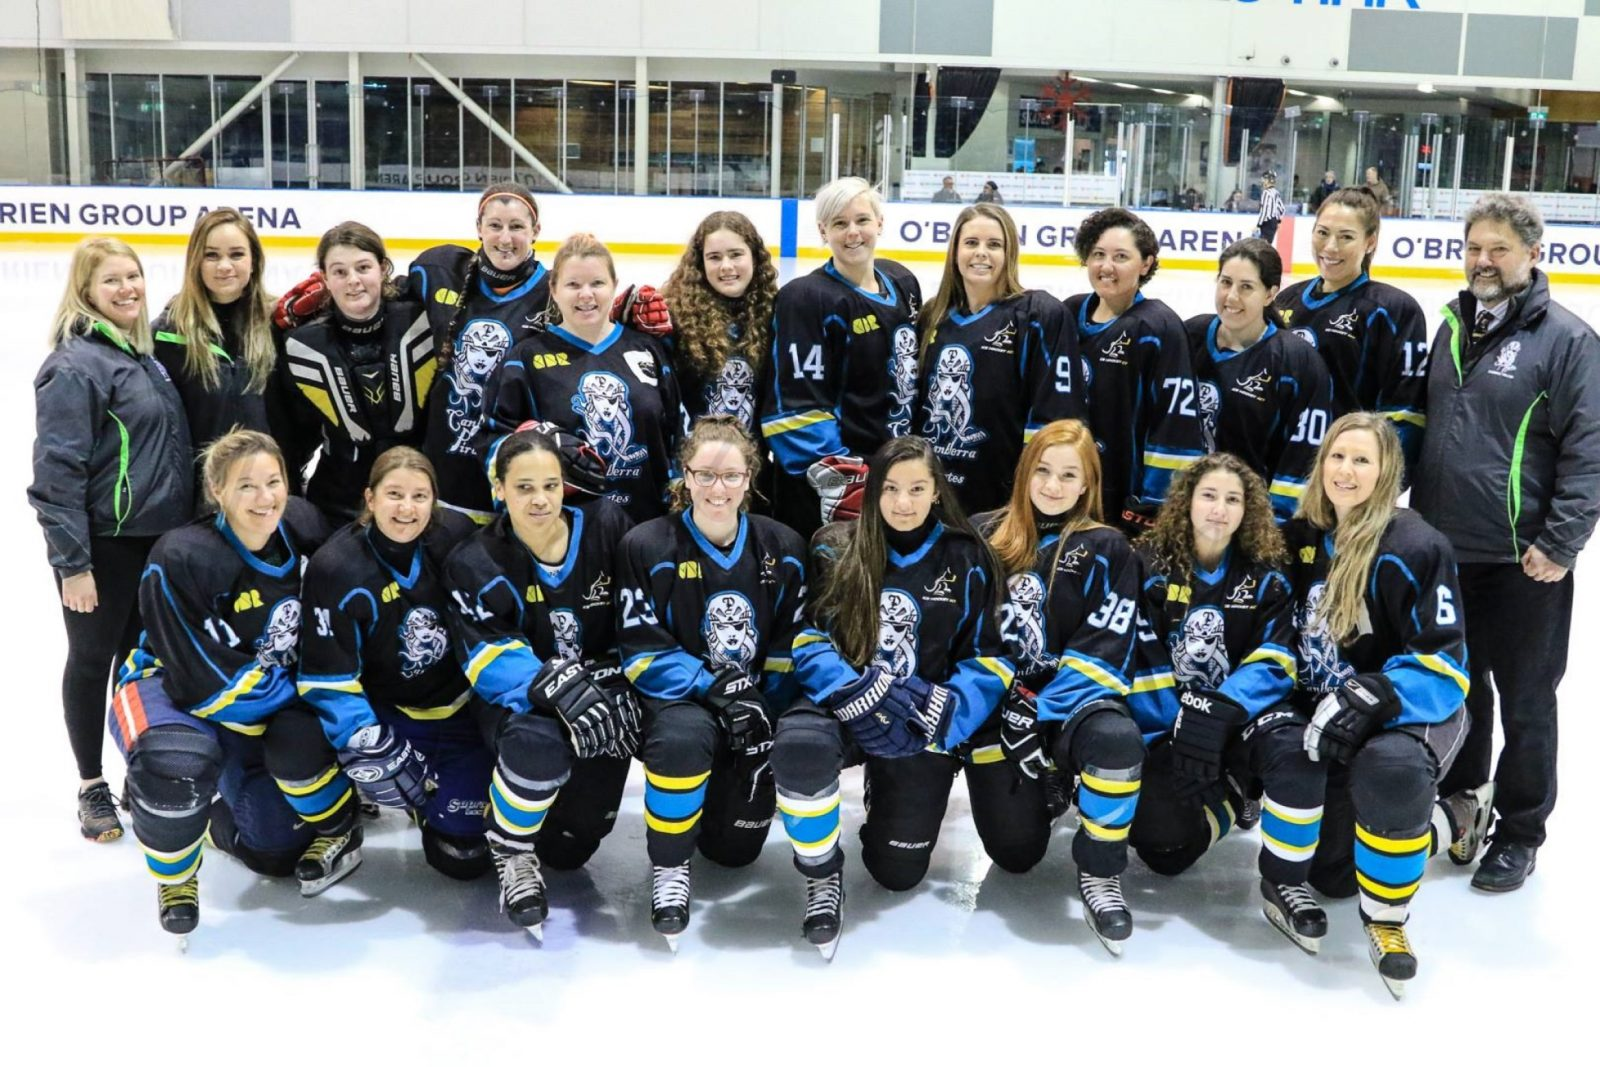 Canberra Pirates Women's Ice Hockey Club